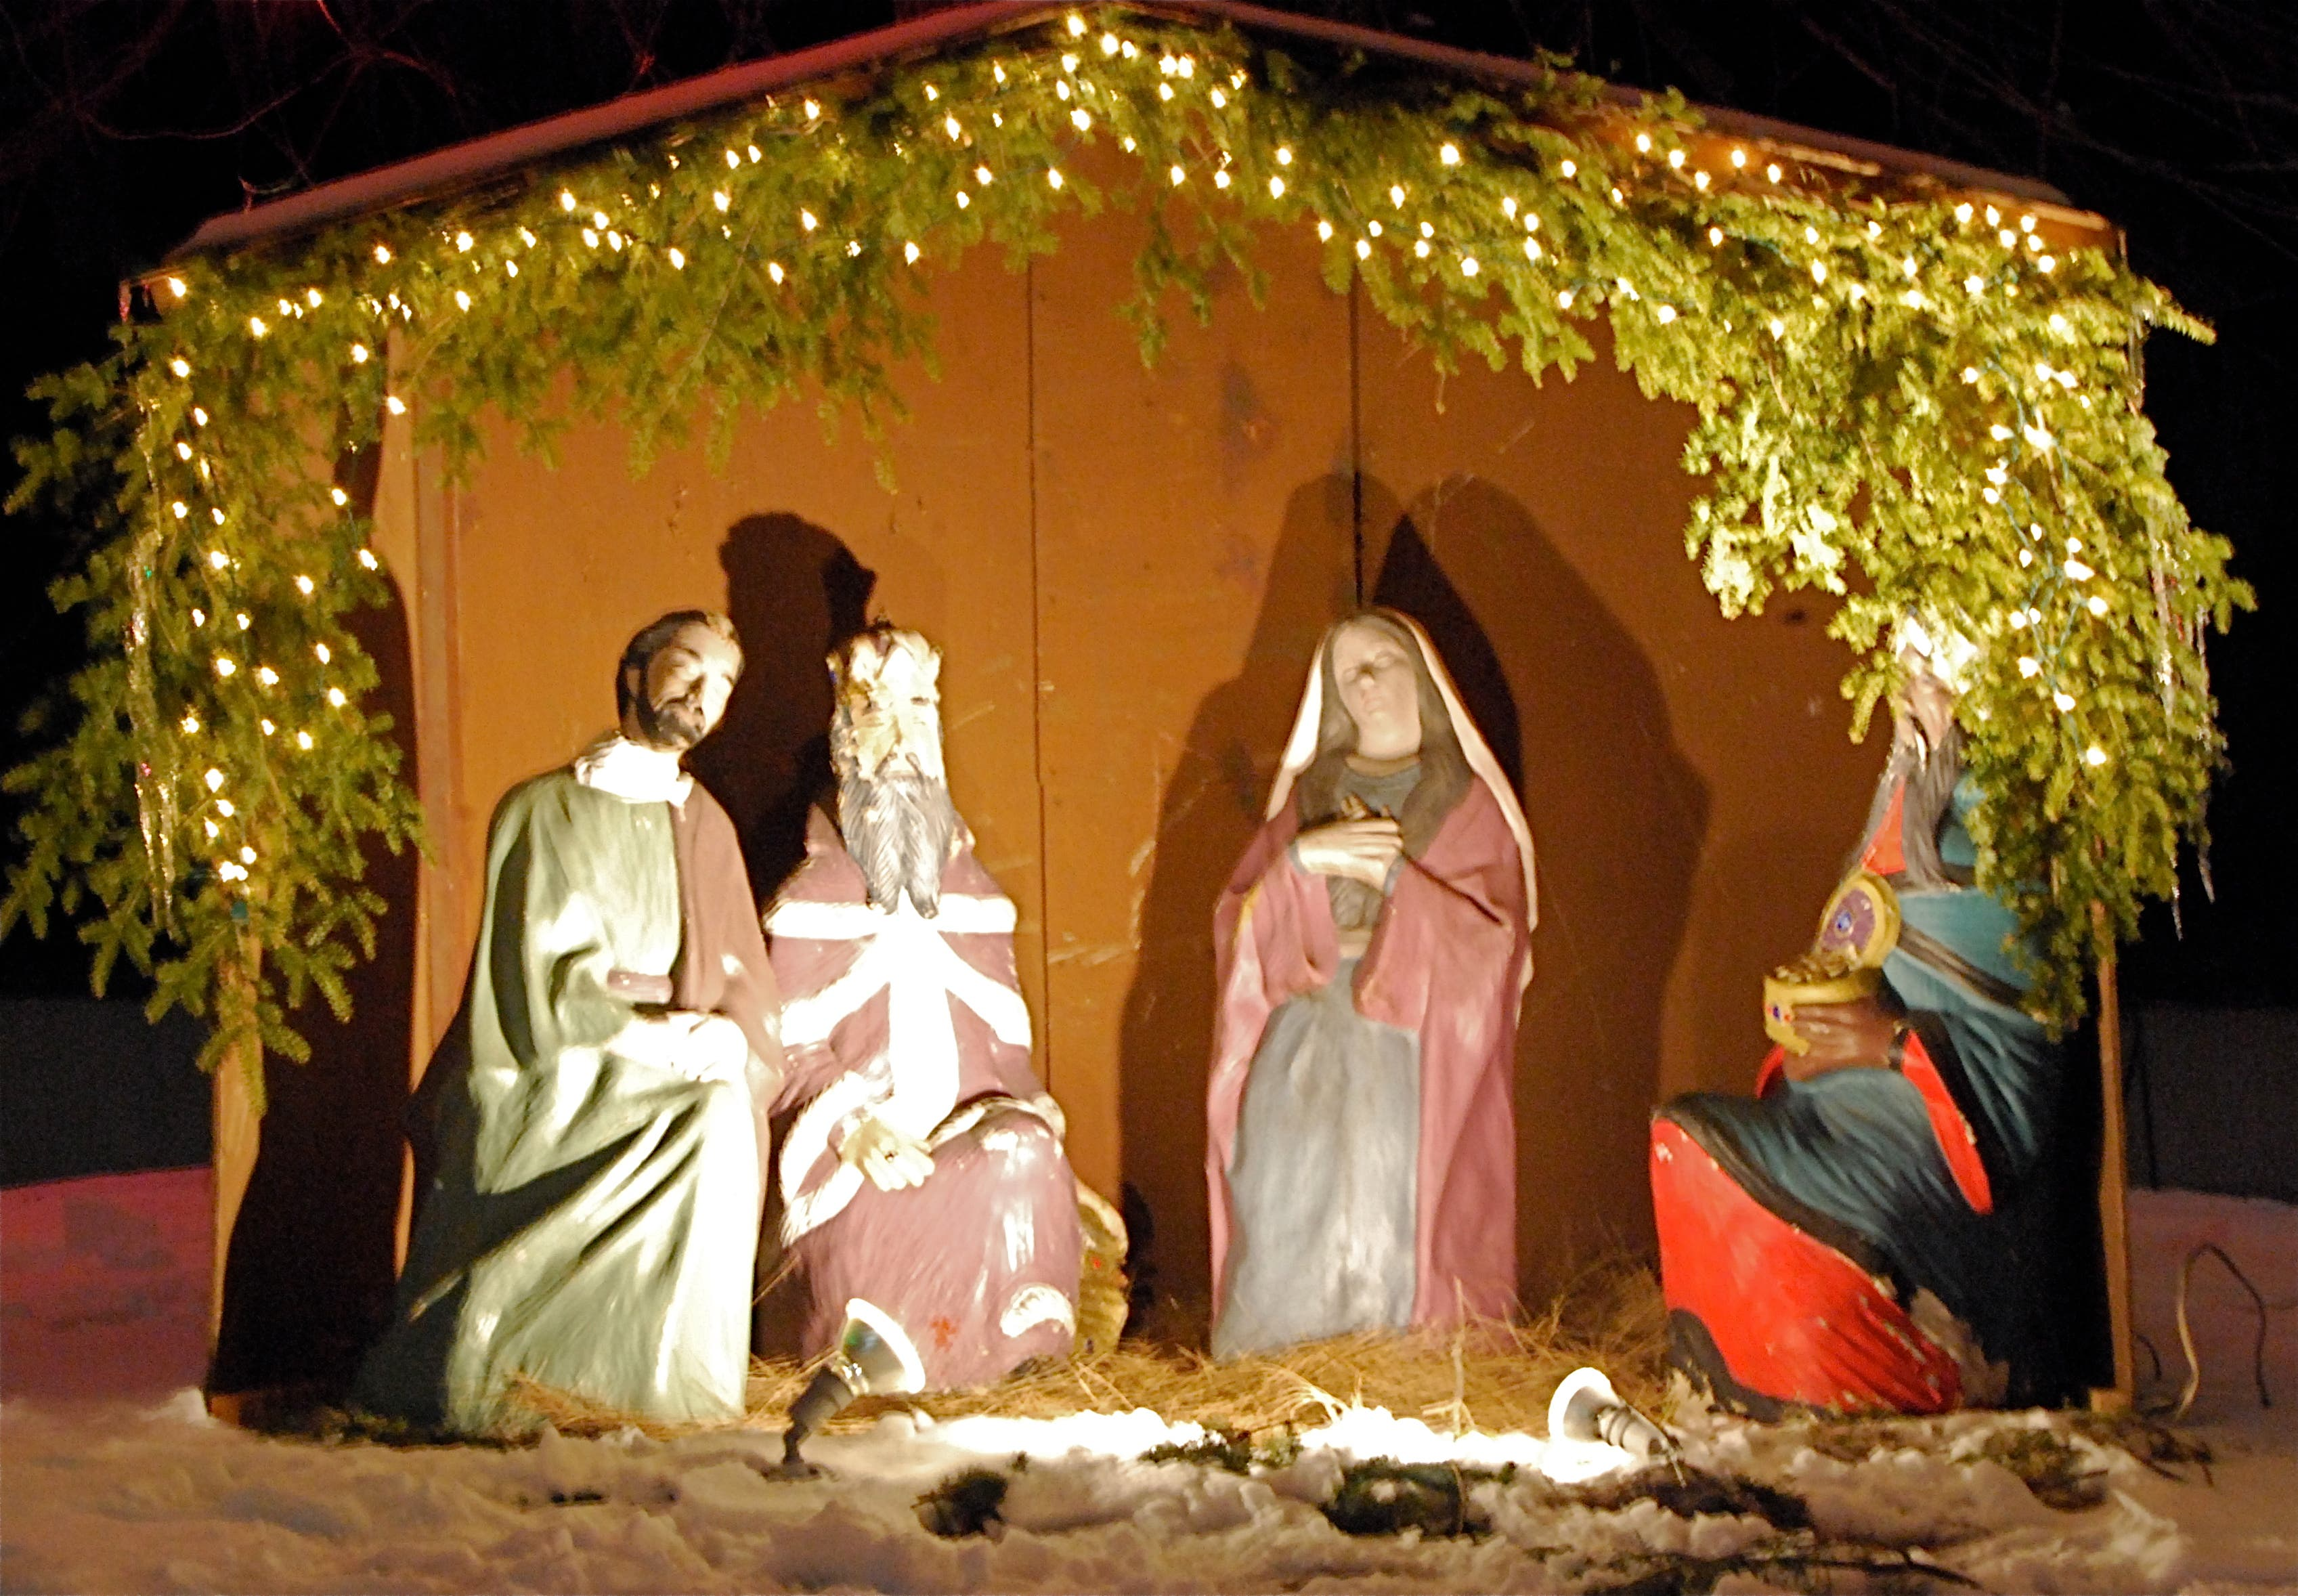 Christmas Church Services Near Me.Christmas Church Services In New Lenox New Lenox Il Patch